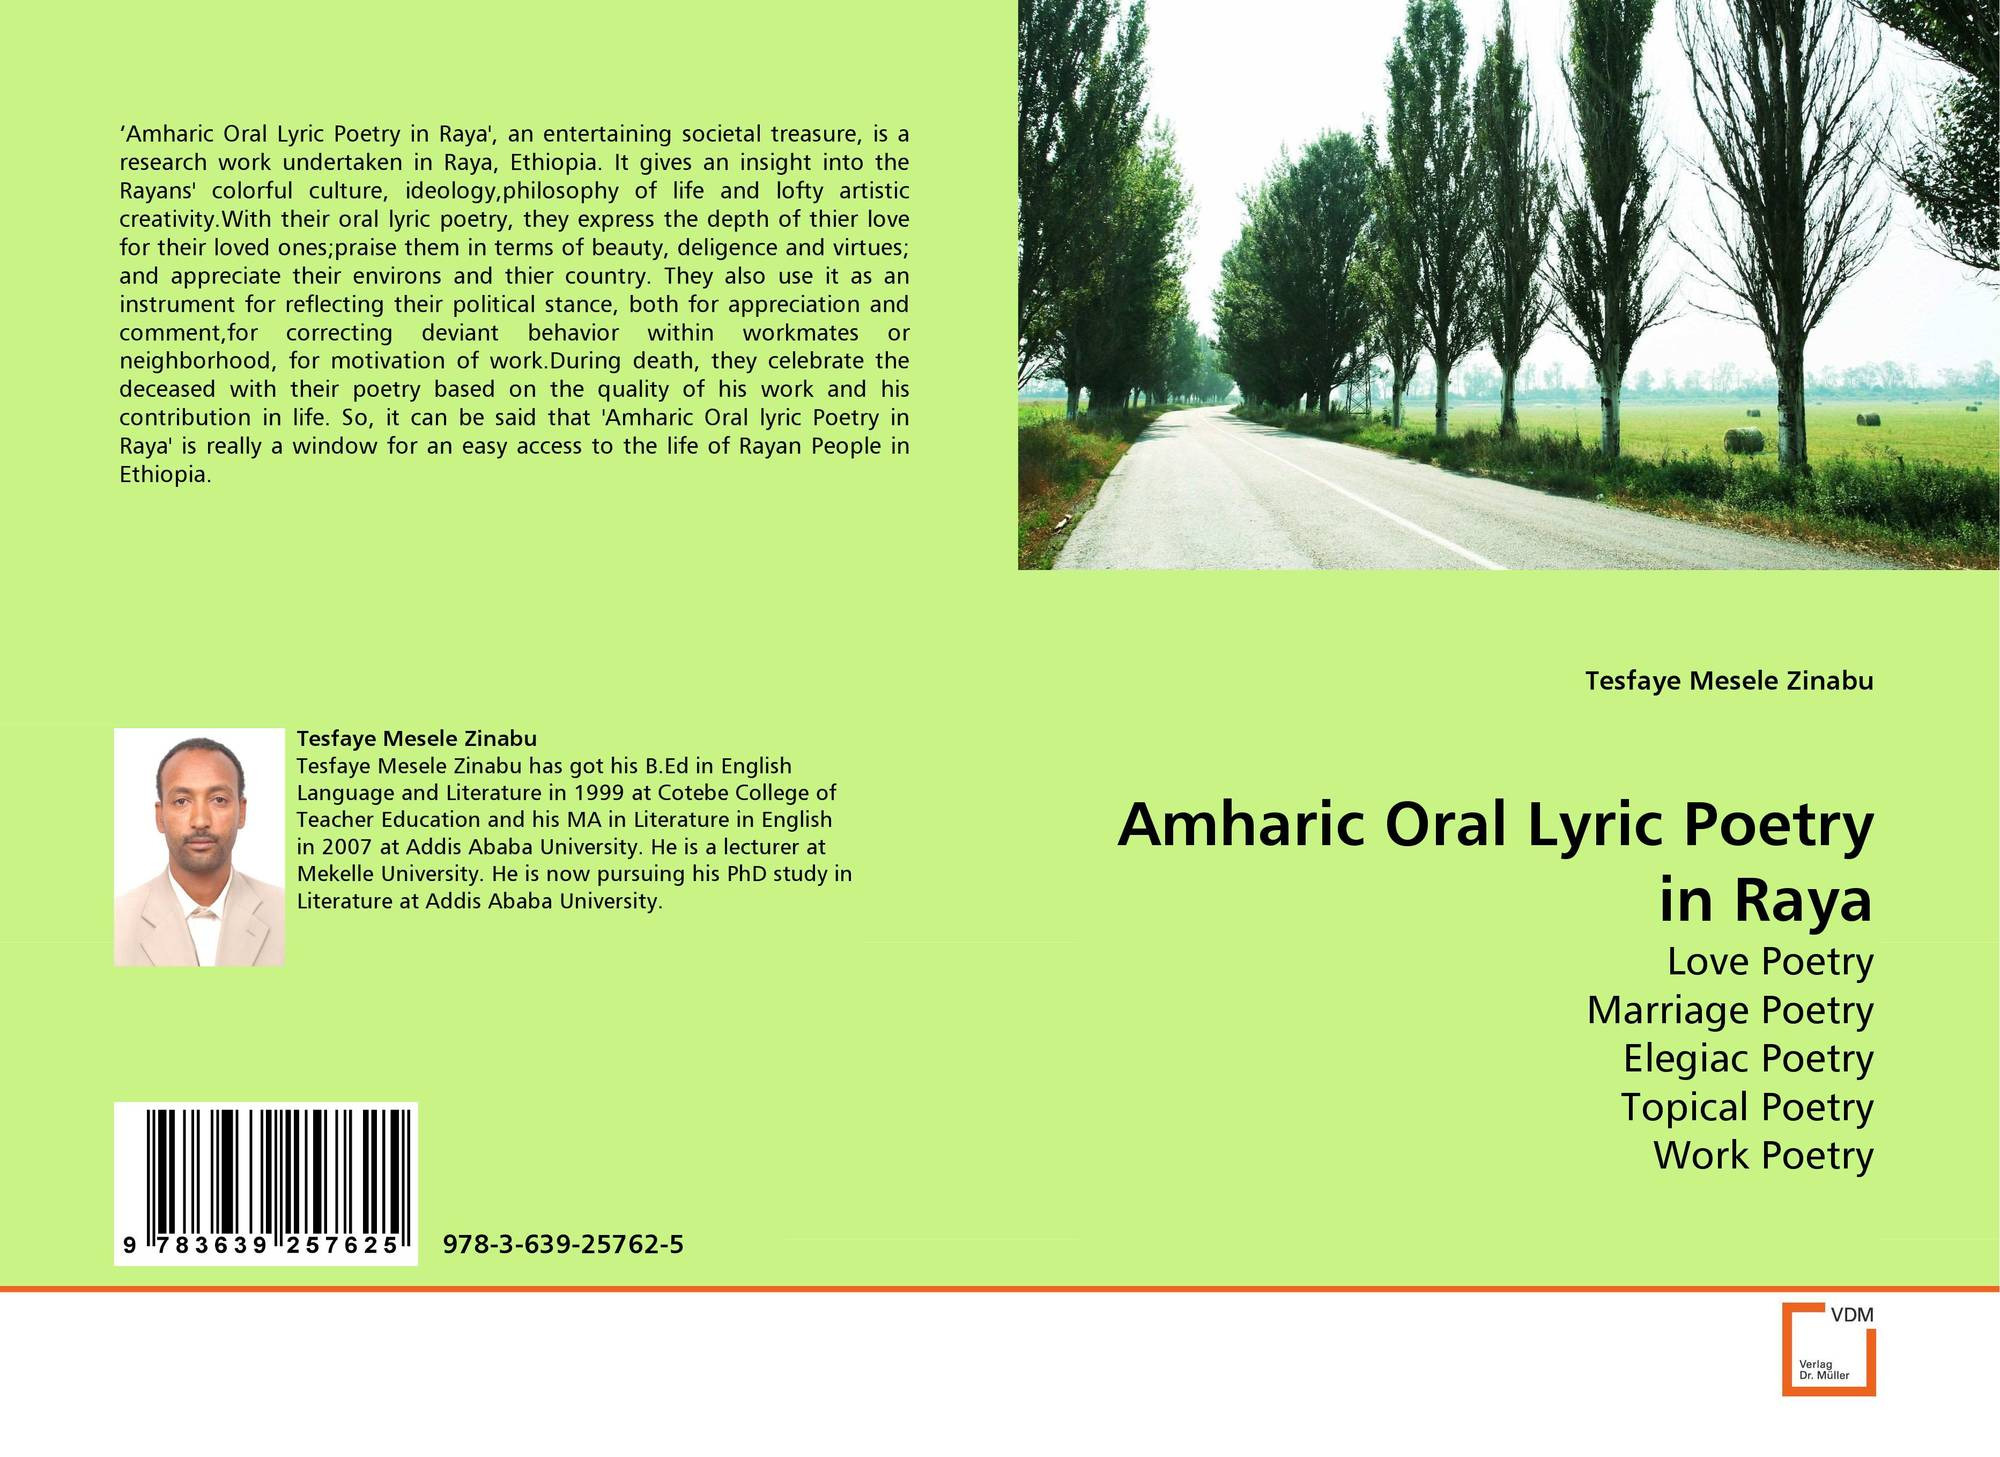 Amharic Oral Lyric Poetry in Raya, 978-3-639-25762-5